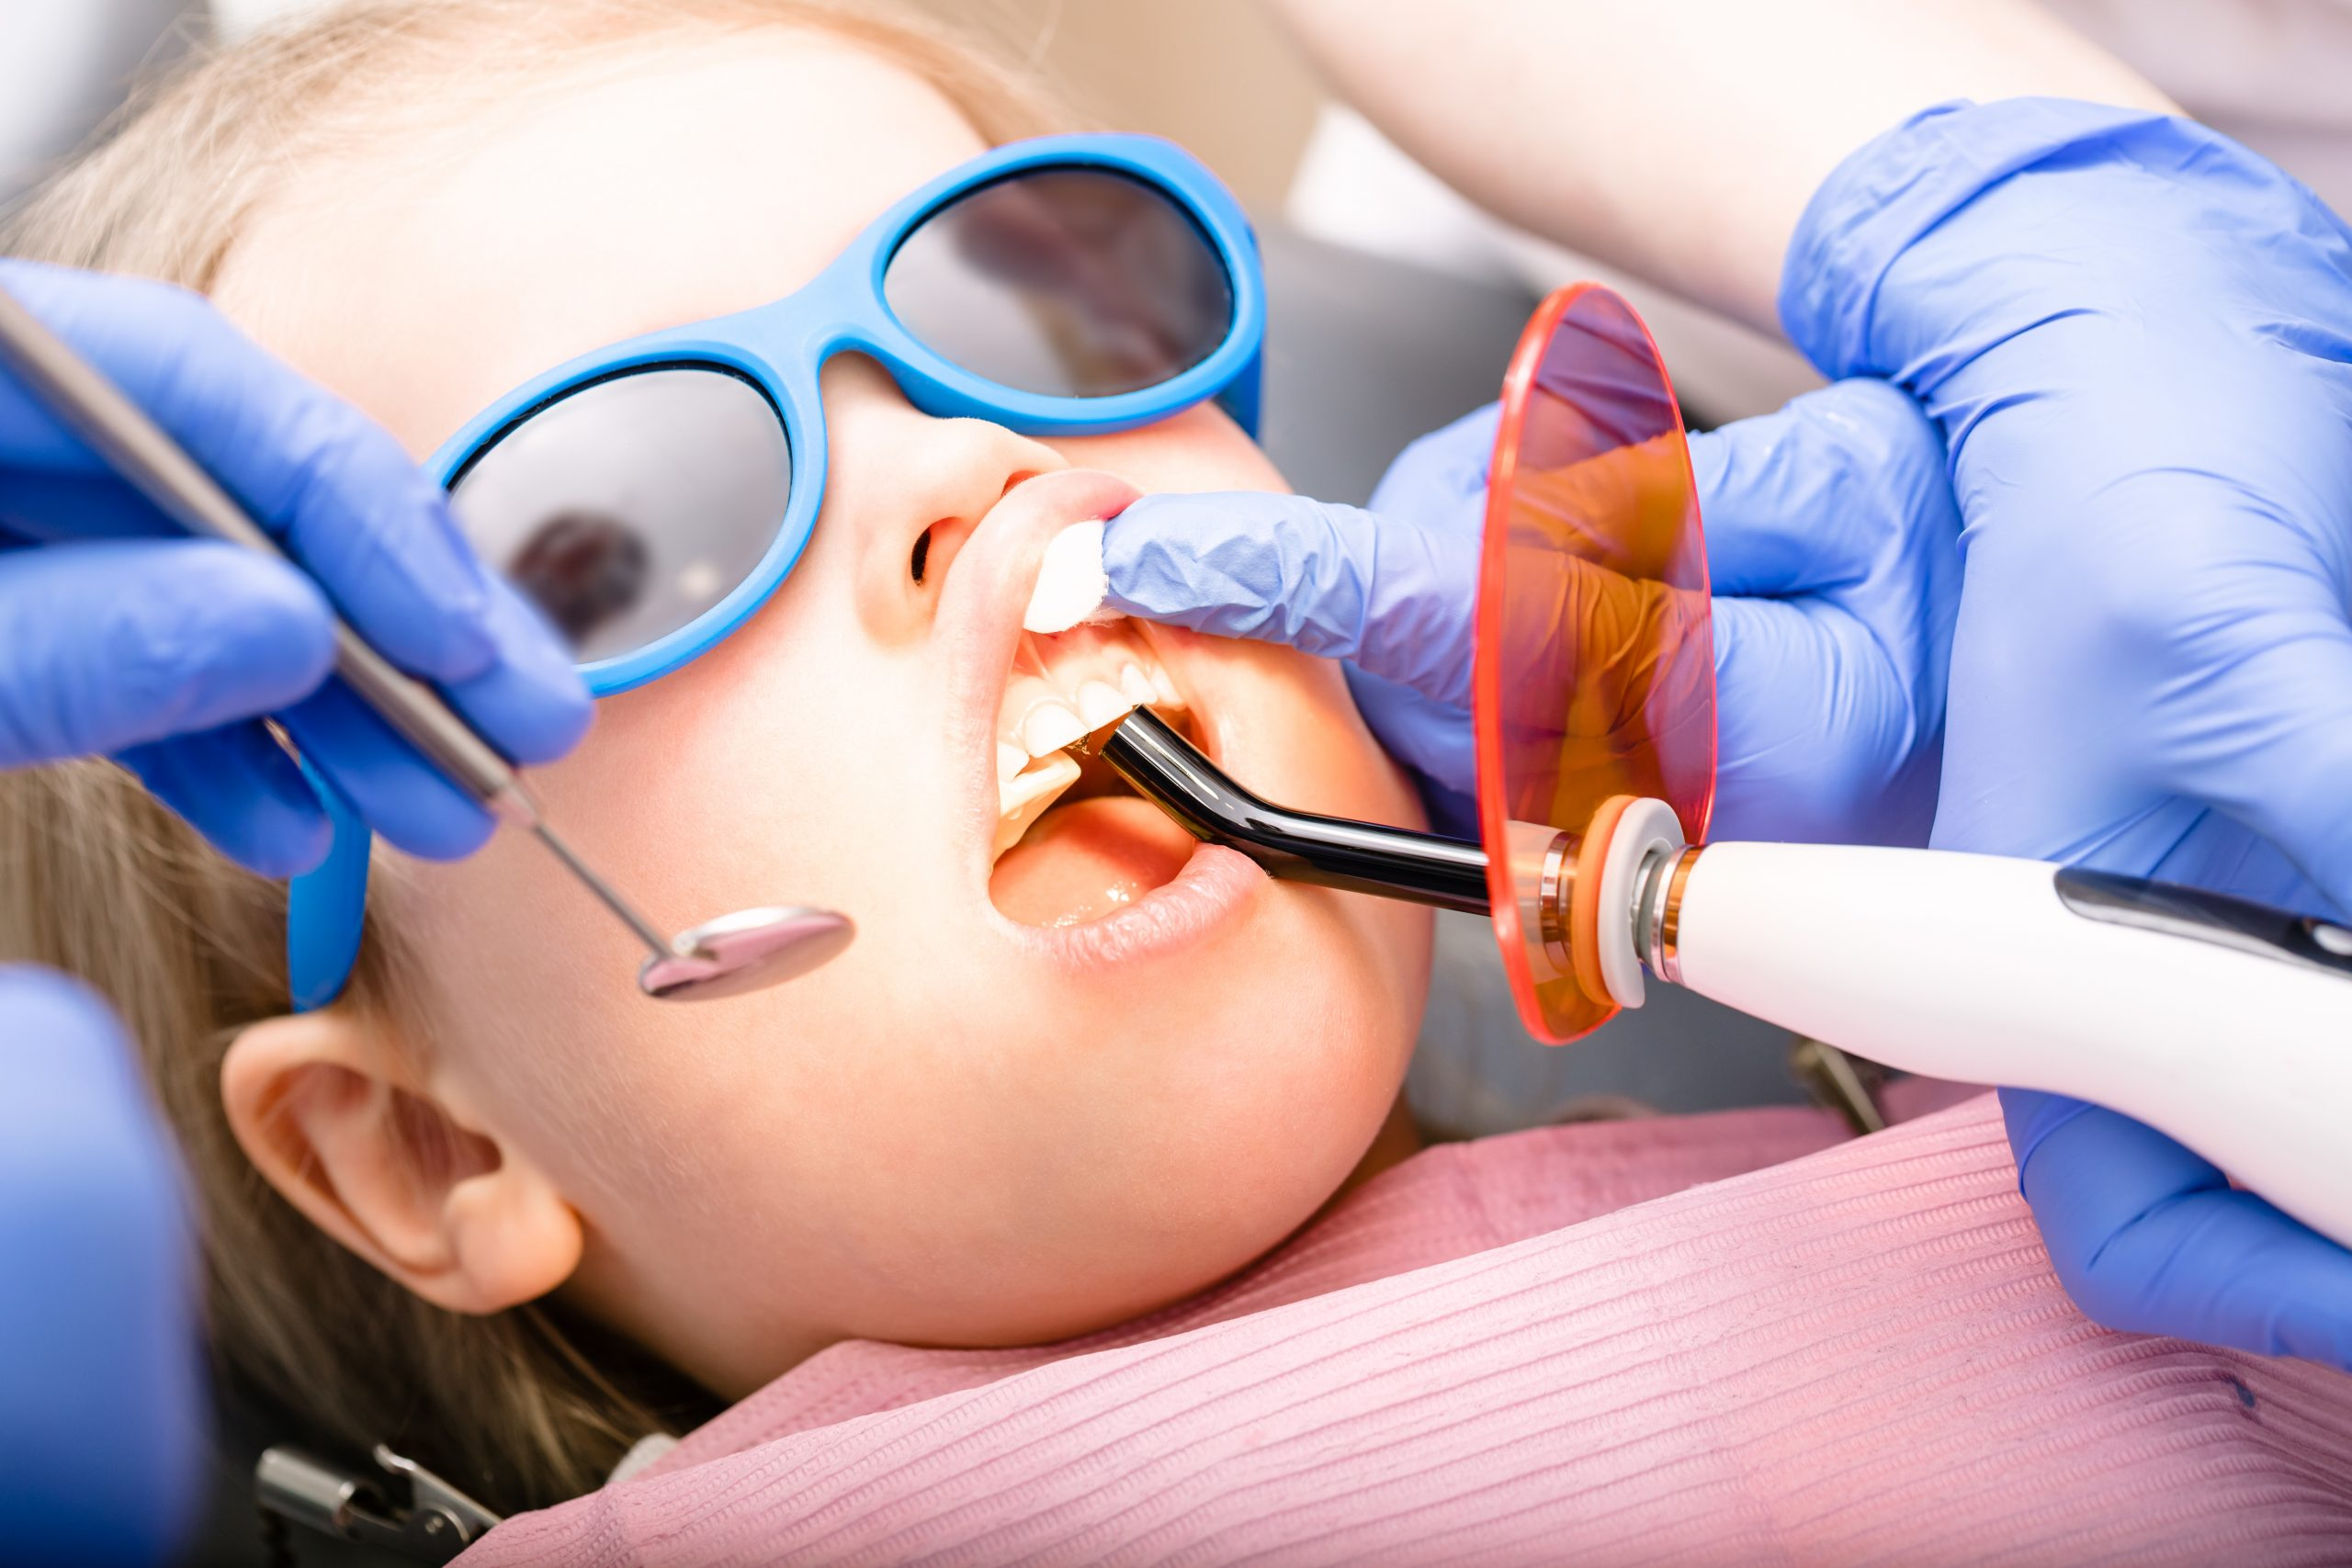 Dentist performing dental filling procedure to a little girl in pediatric dental clinic. Doctor using dental ultraviolet curing light for filling polymerization